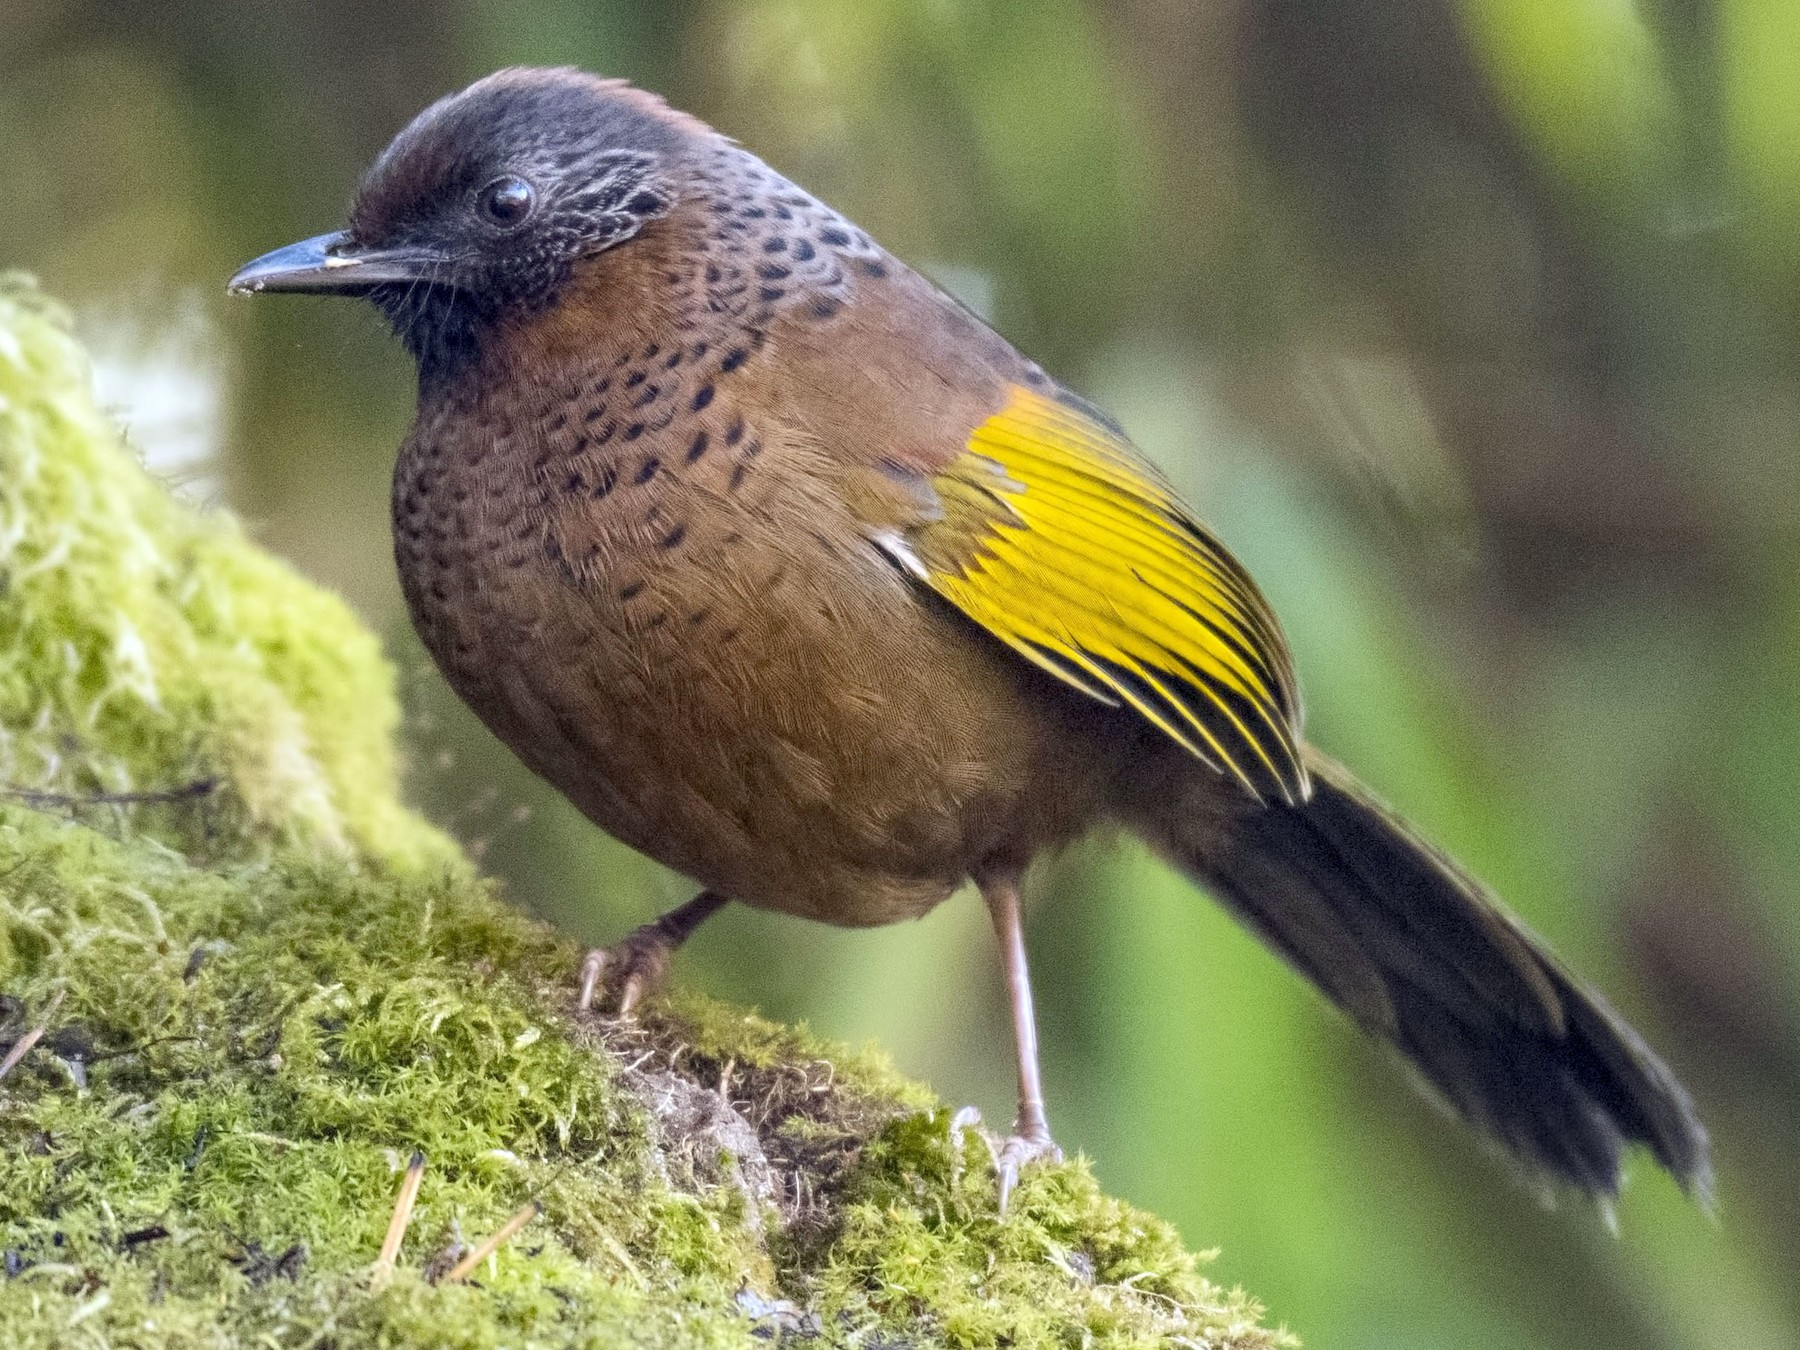 Chestnut-crowned Laughingthrush - Sommouli Sarkar